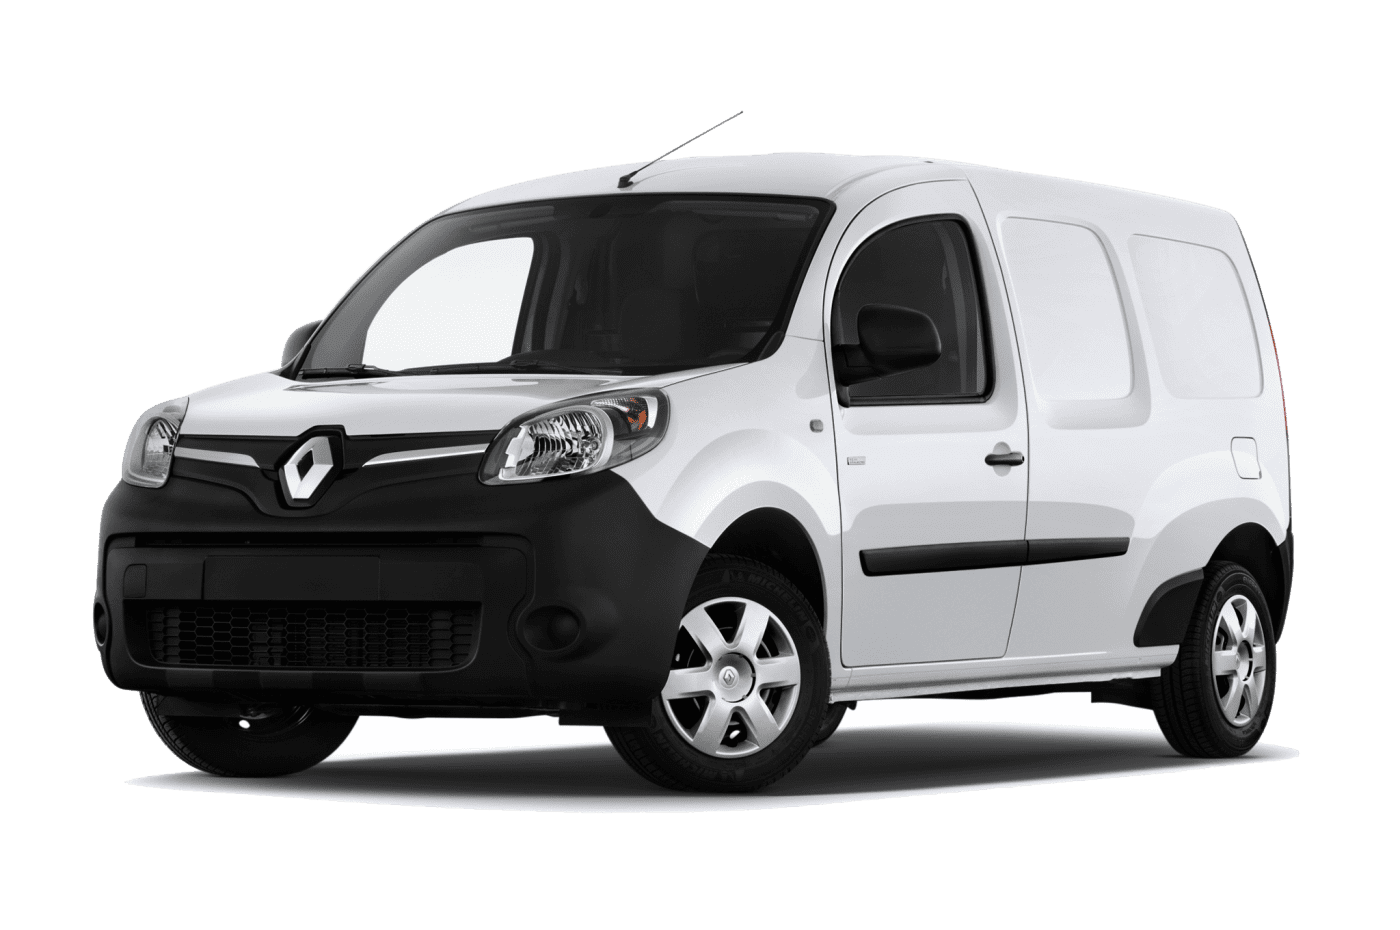 renault kangoo ze leasen dat kan al vanaf 451 euro per maand. Black Bedroom Furniture Sets. Home Design Ideas